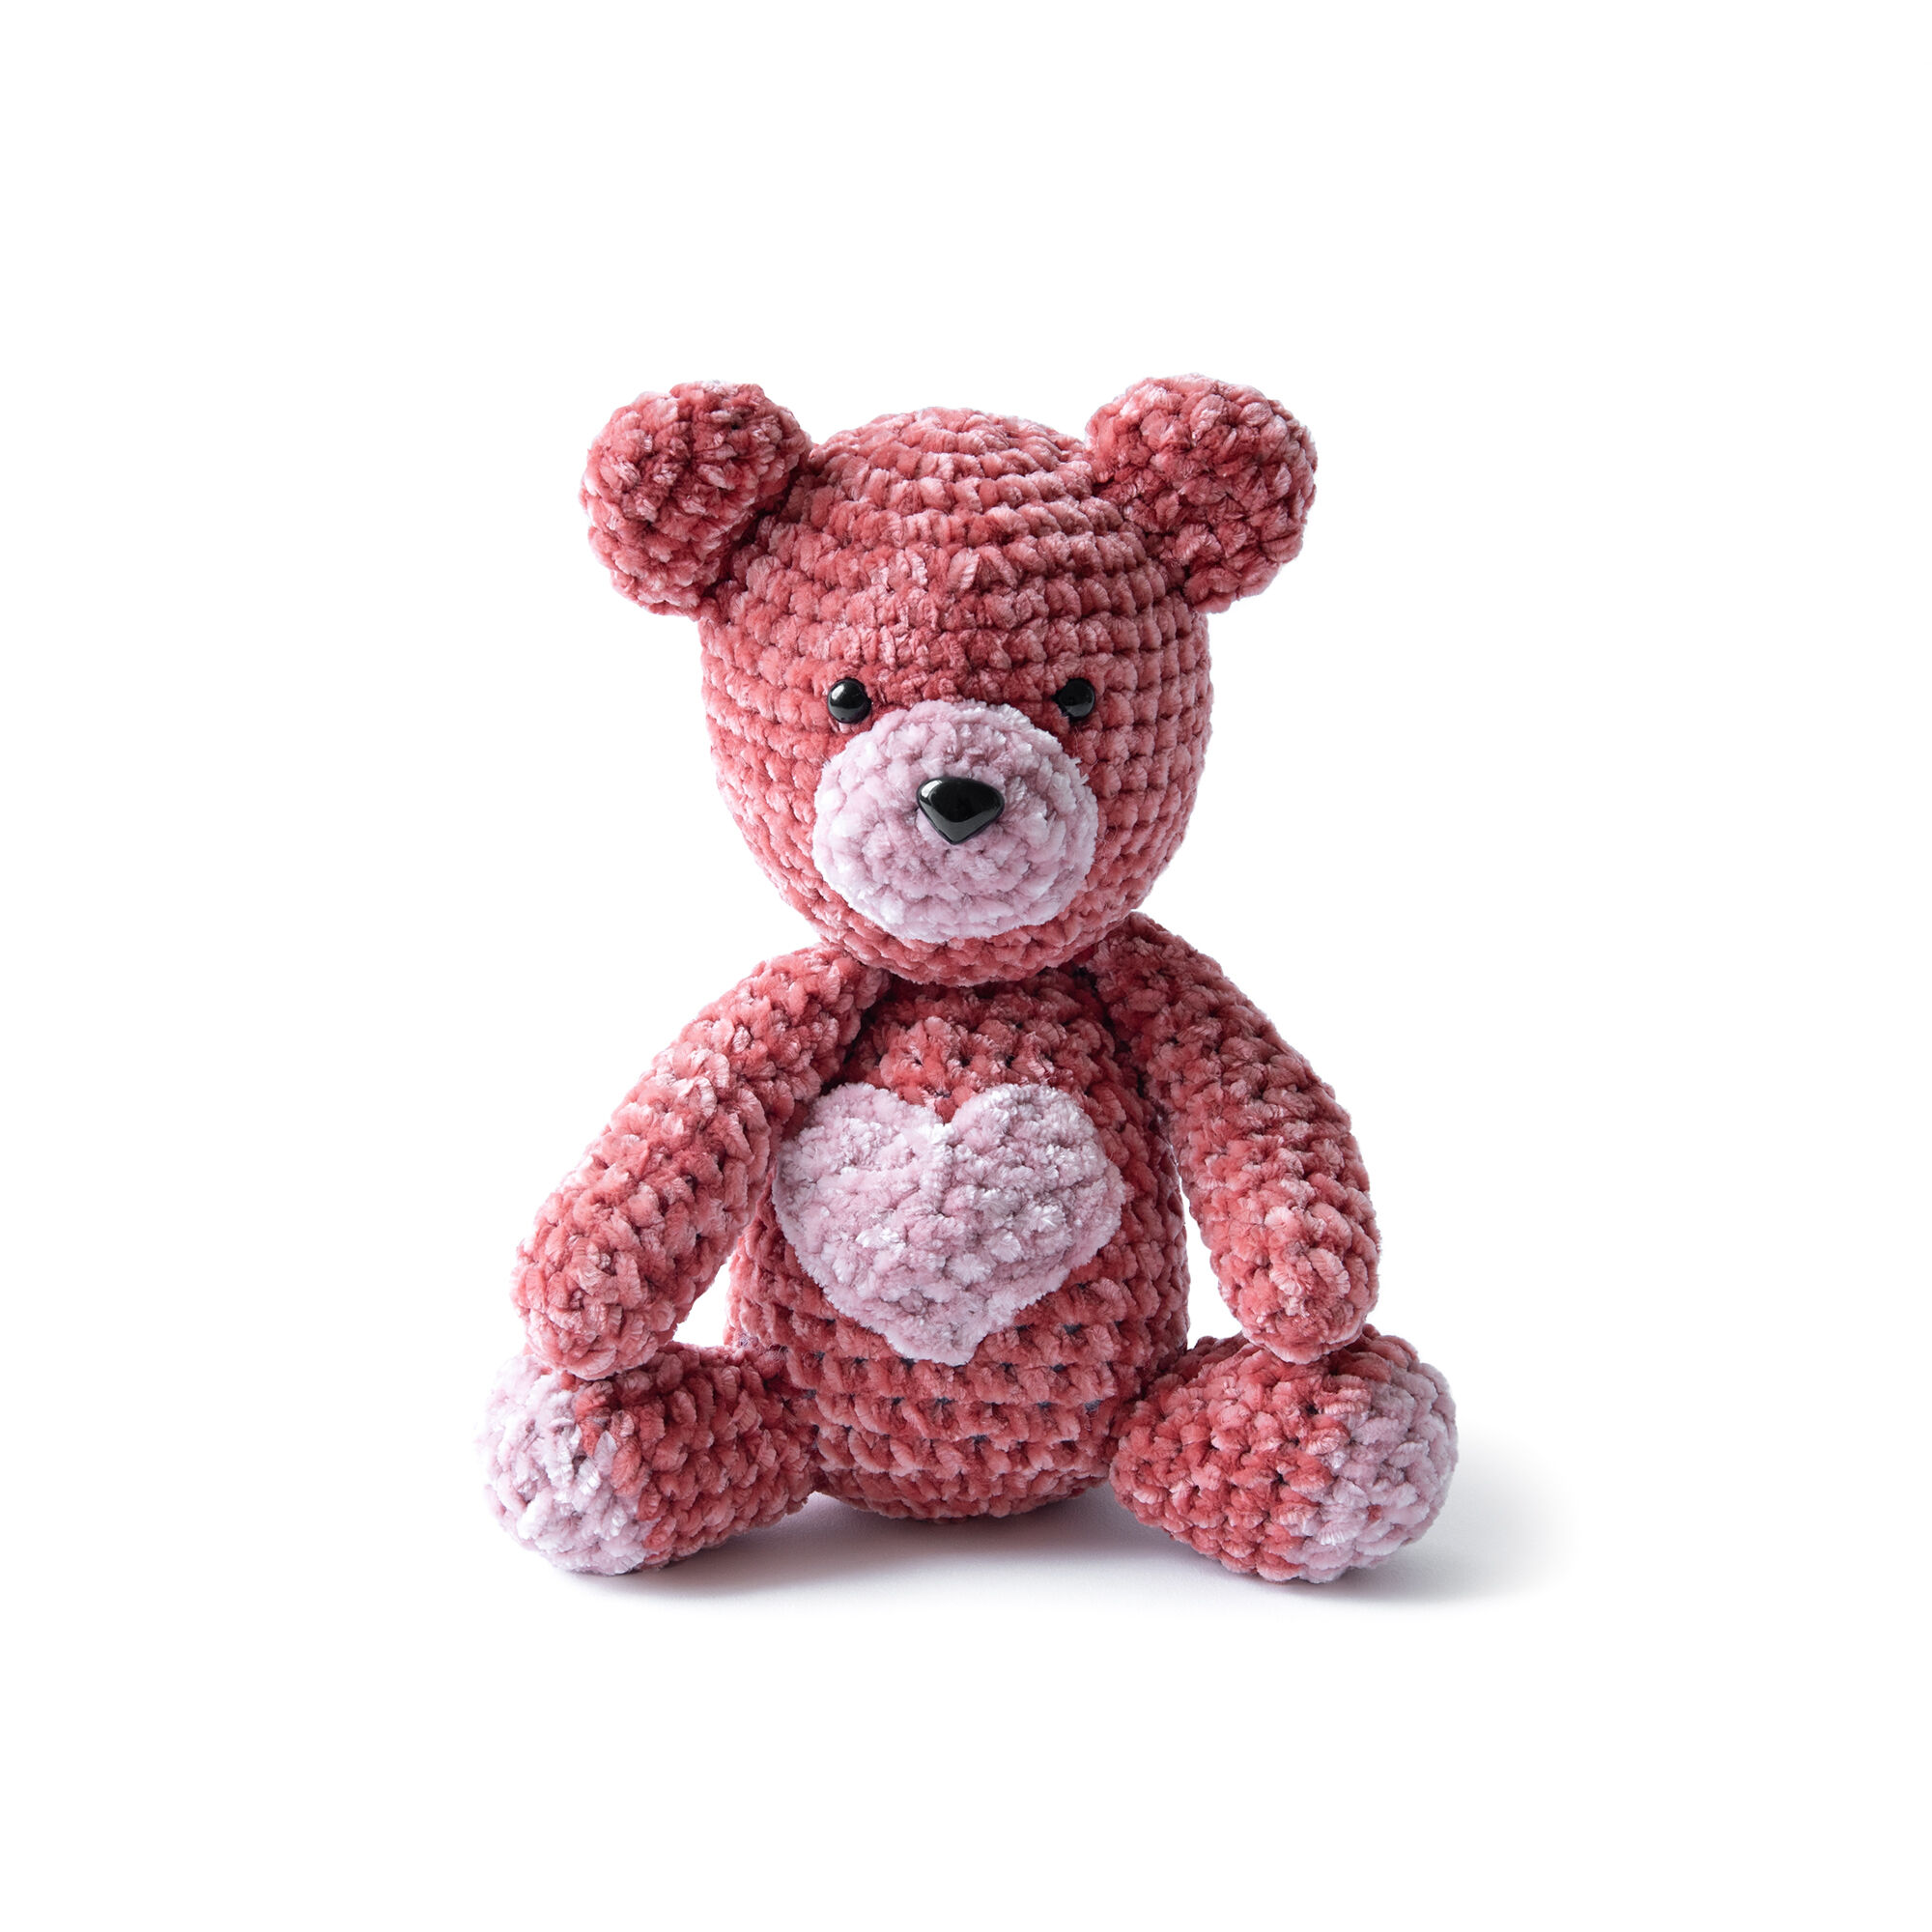 Crochet Your Own Mini Bear Part 1 Head - YouTube | 2000x2000